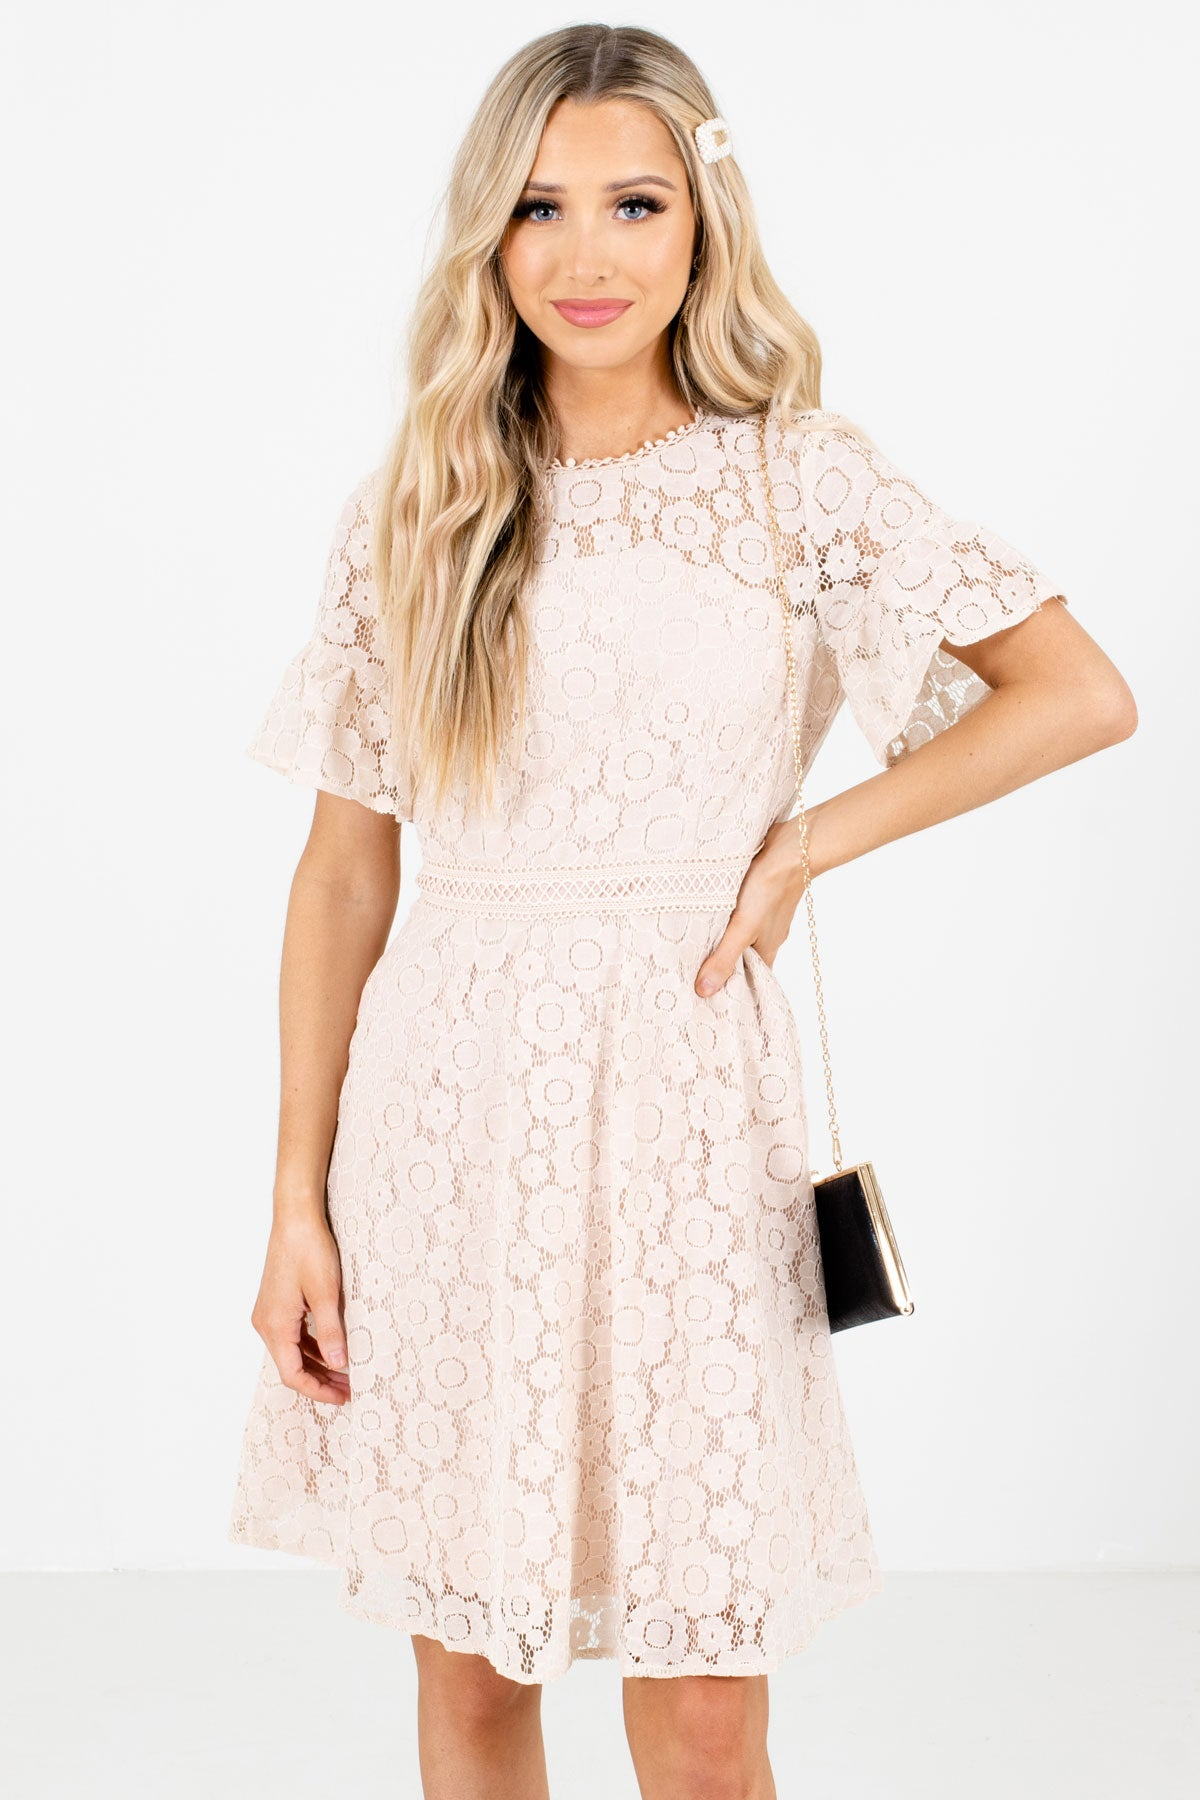 Light Pink High-Quality Lace Material Boutique Knee-Length Dresses for Women